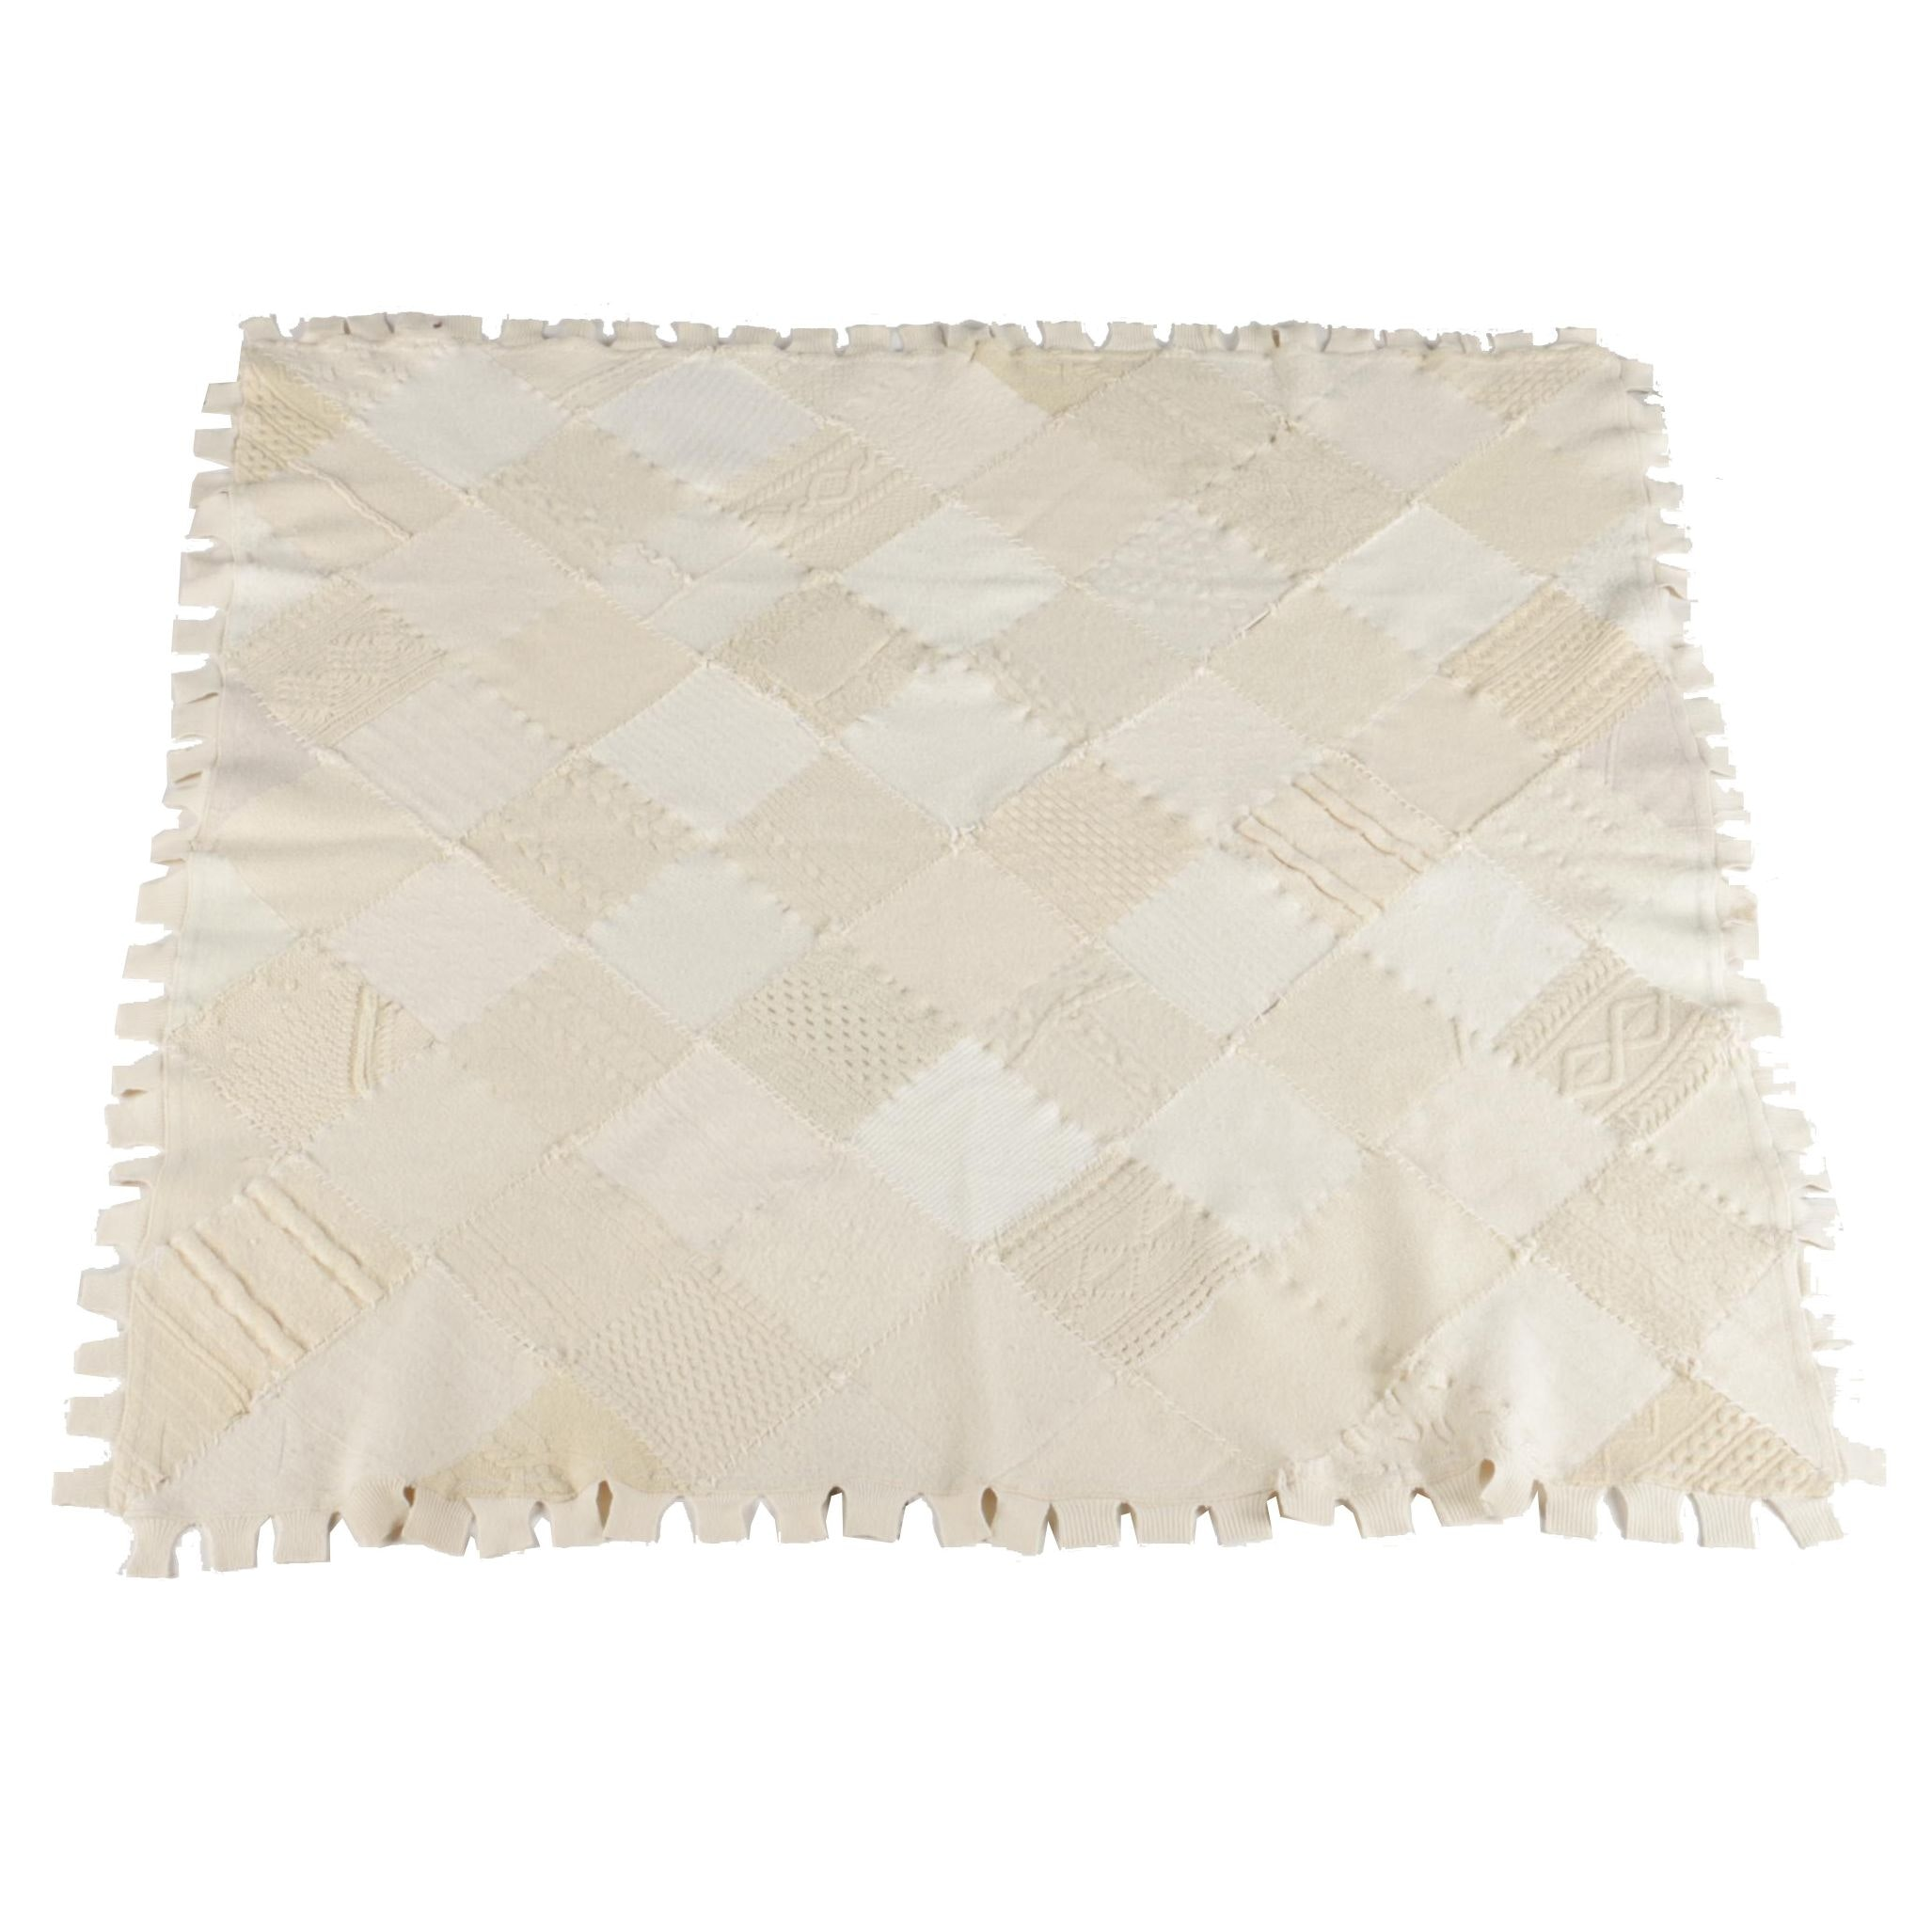 Chrispina Ffrench Handmade Recycled Wool Throw